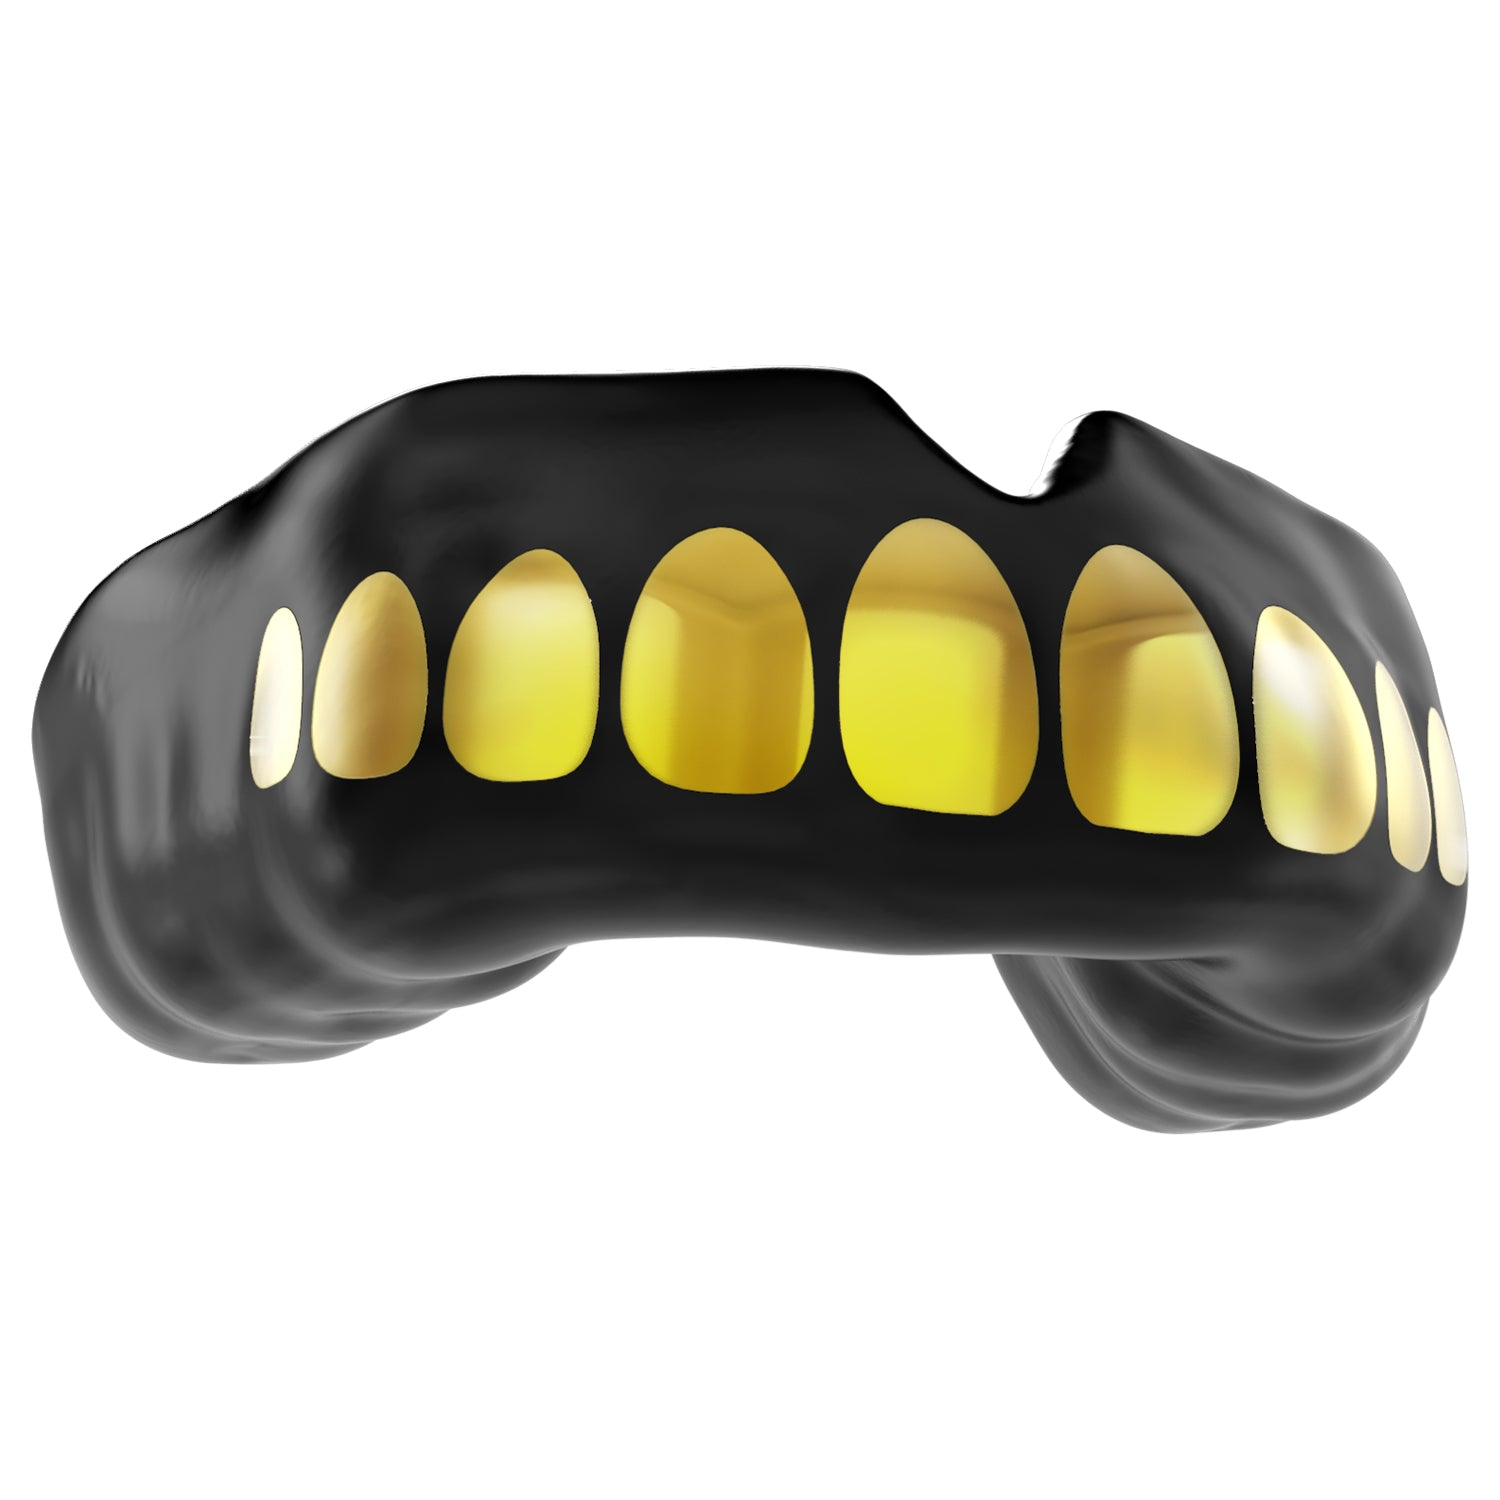 SAFEJAWZ® Popular Design Custom-fit Mouthguard - The Goldie